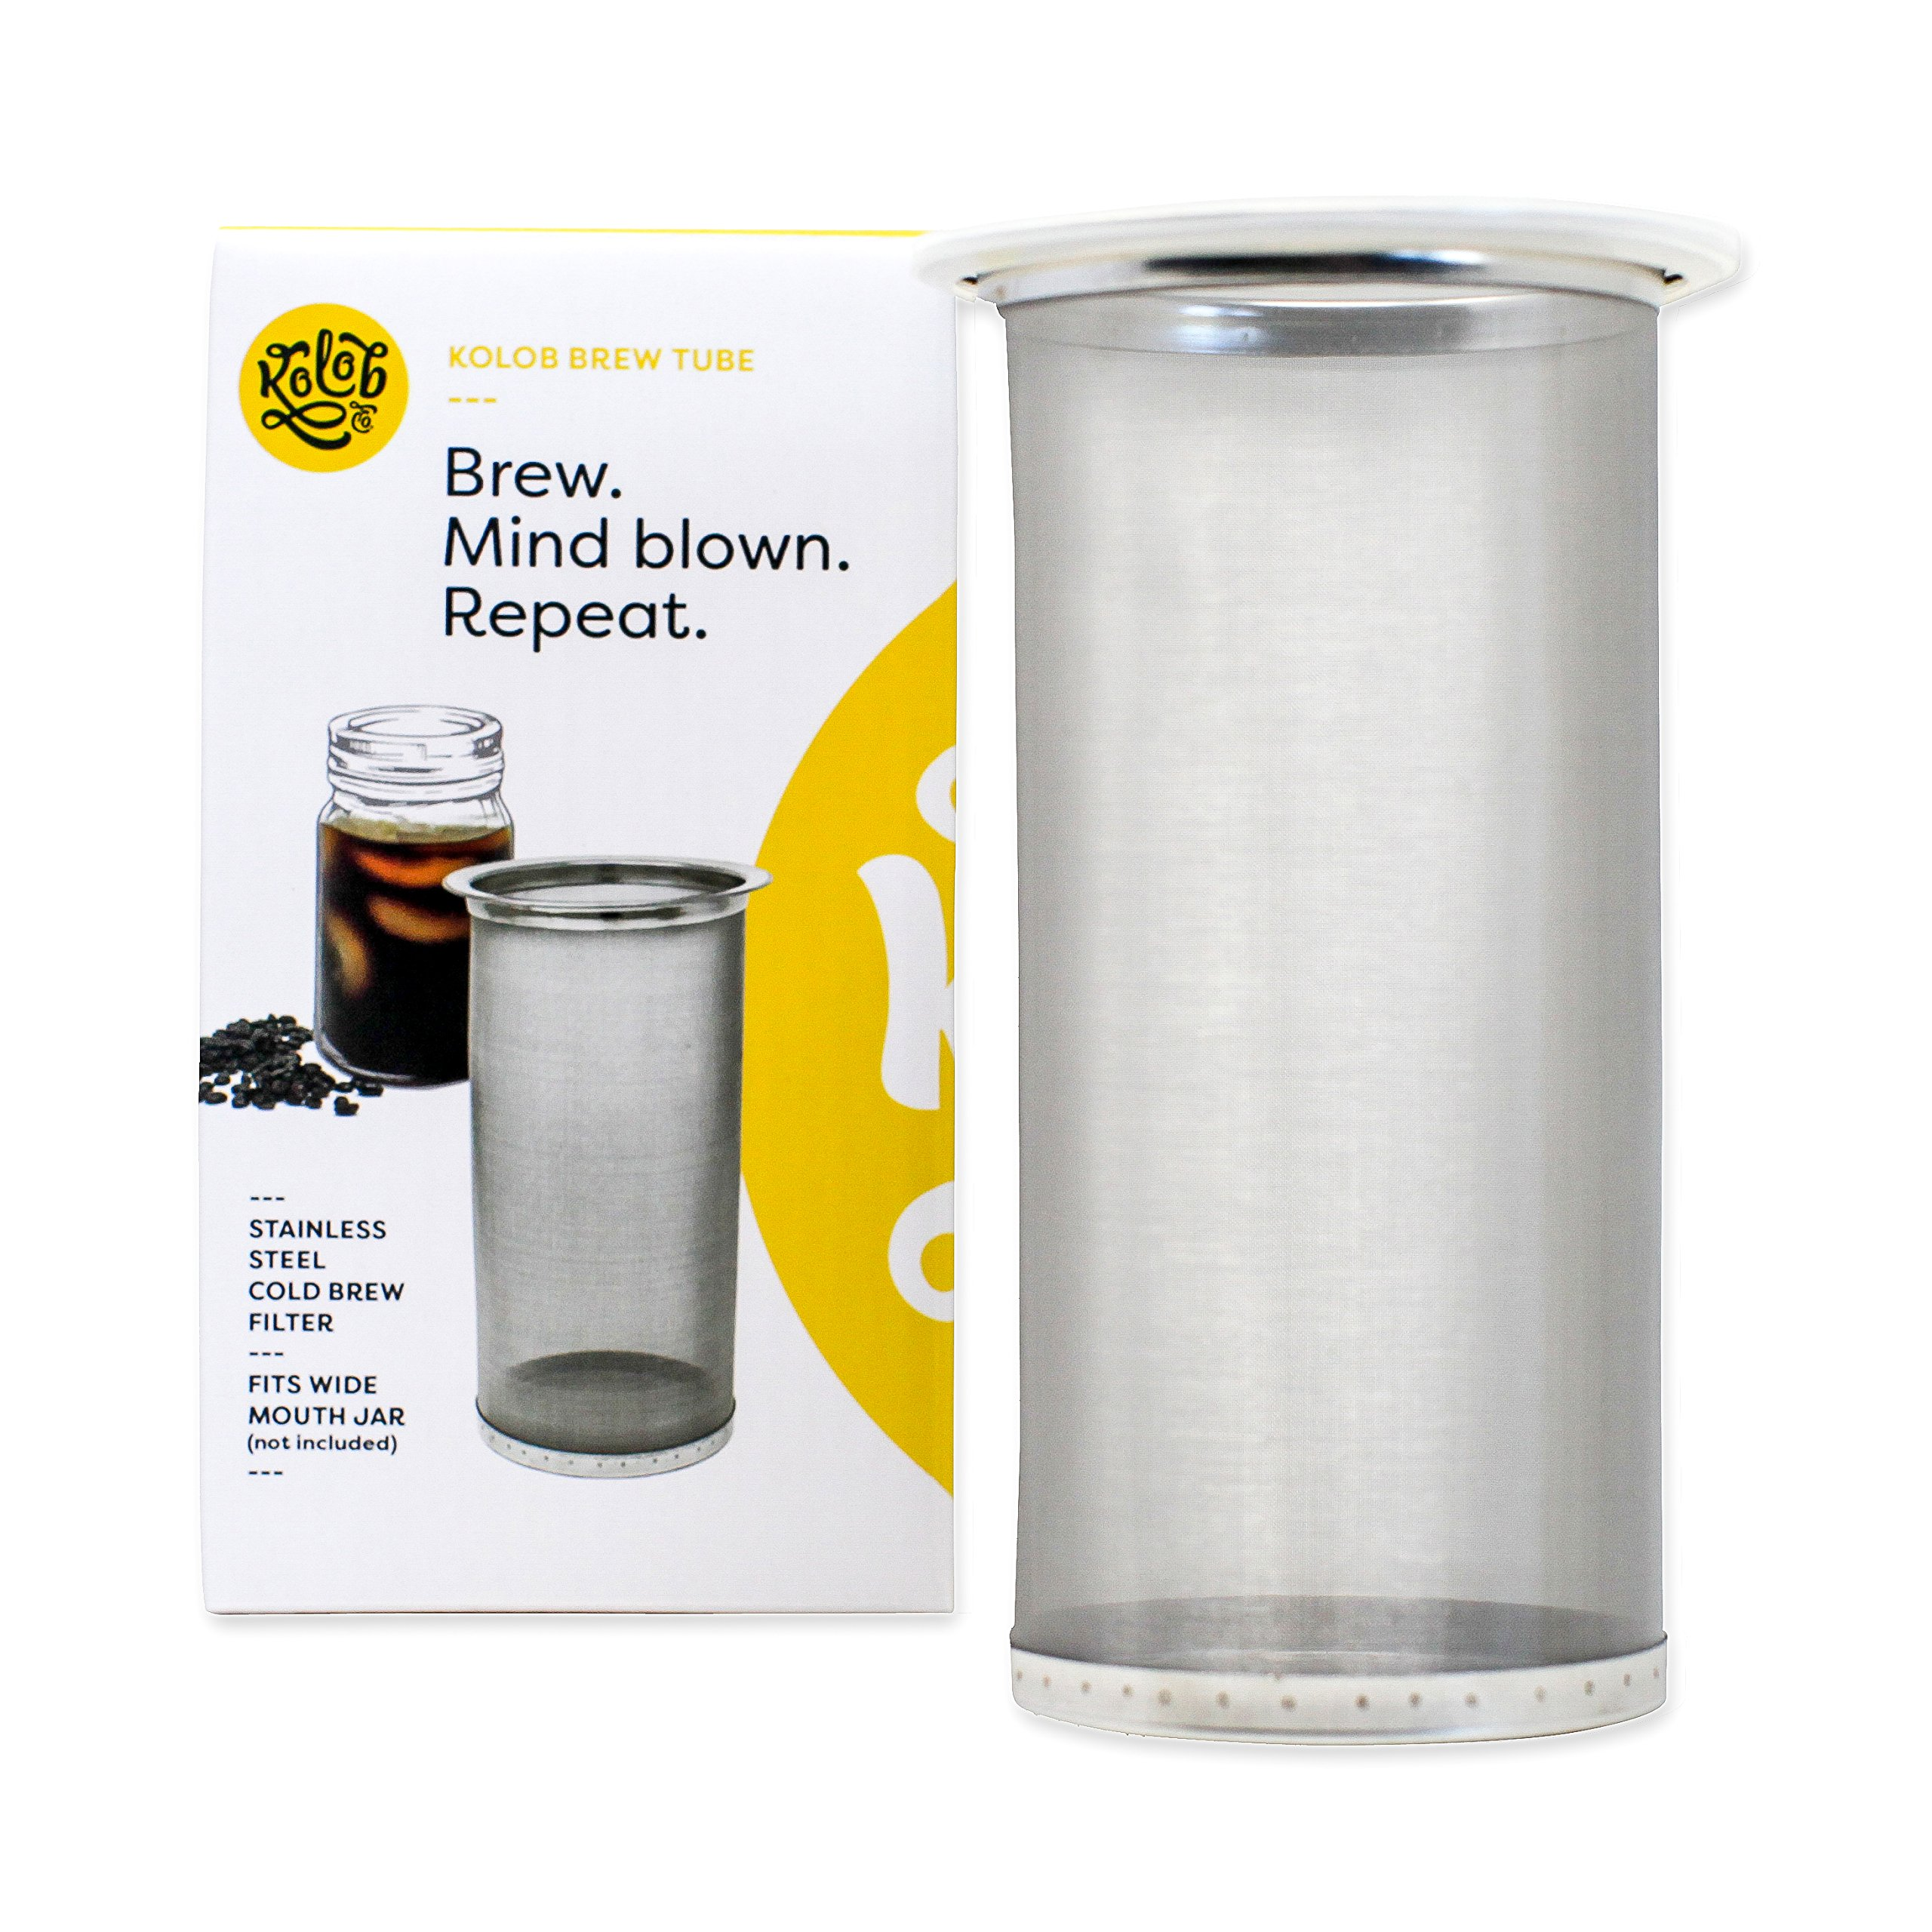 Brew Tube Cold Brew Coffee Maker - 1 or 2 Quart Stainless Steel Mesh Reusable Filter for Wide Mouth Glass Mason Jar by Kolob